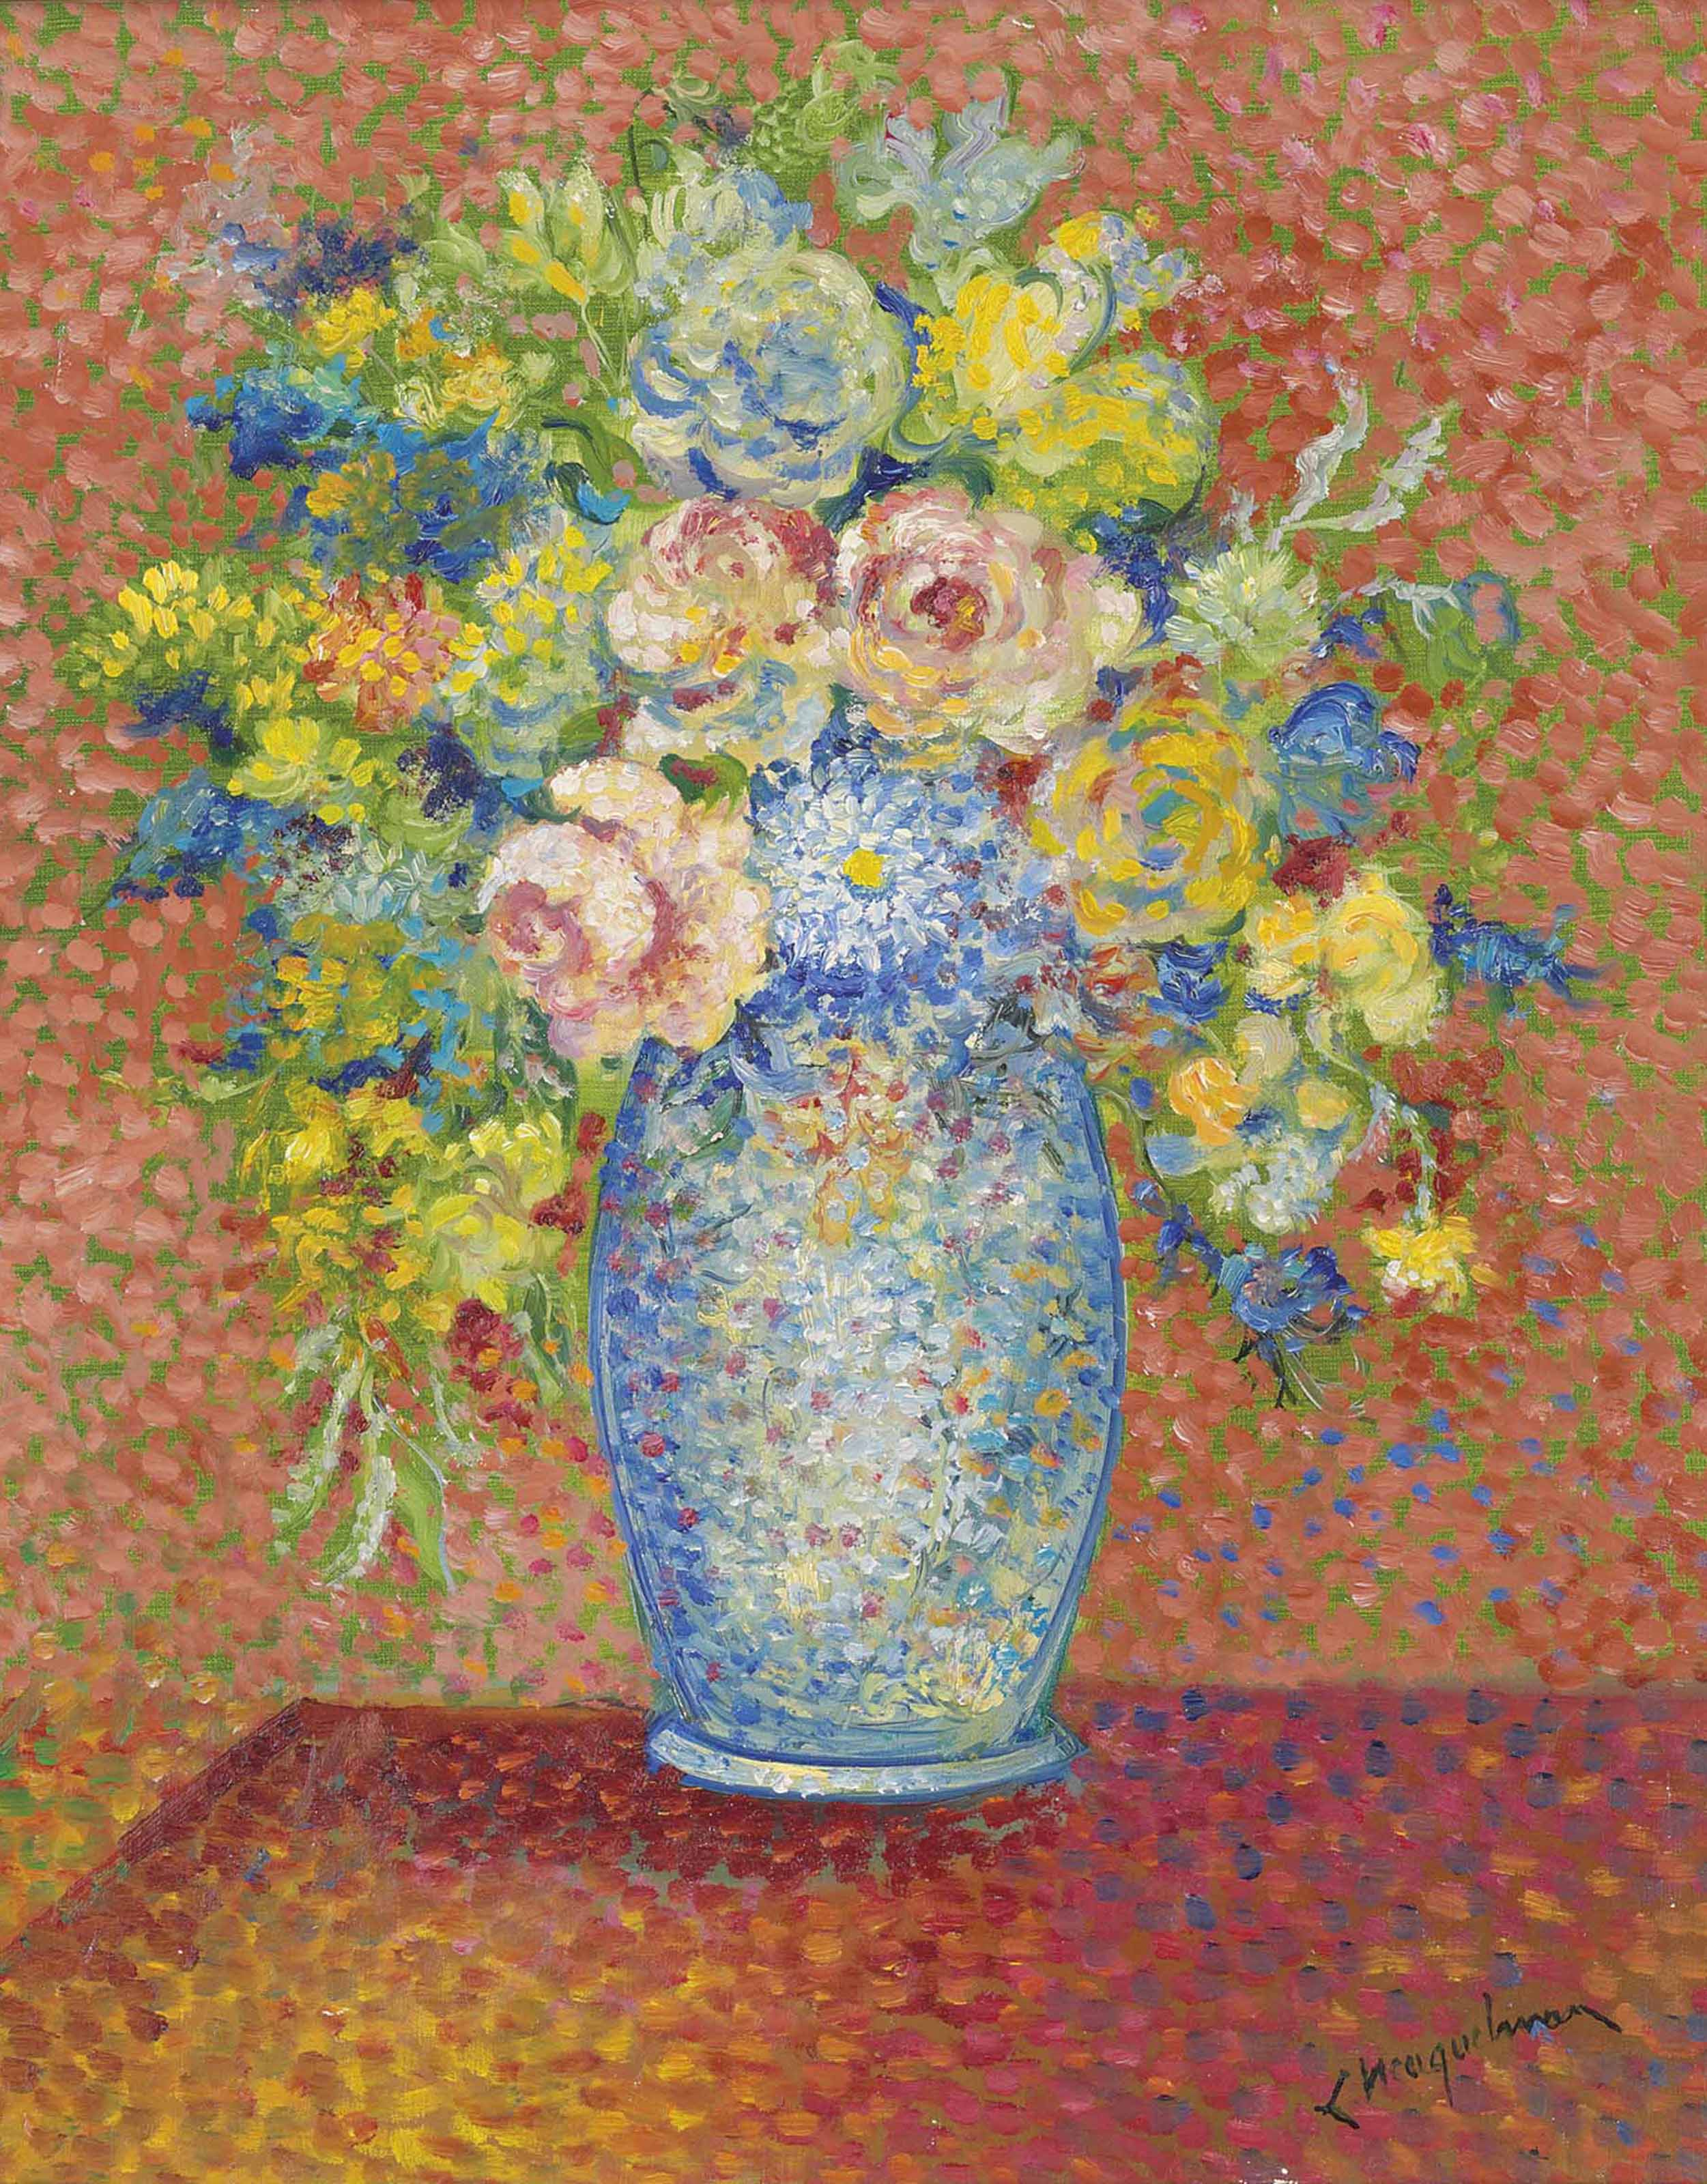 Roses and other flowers in a vase